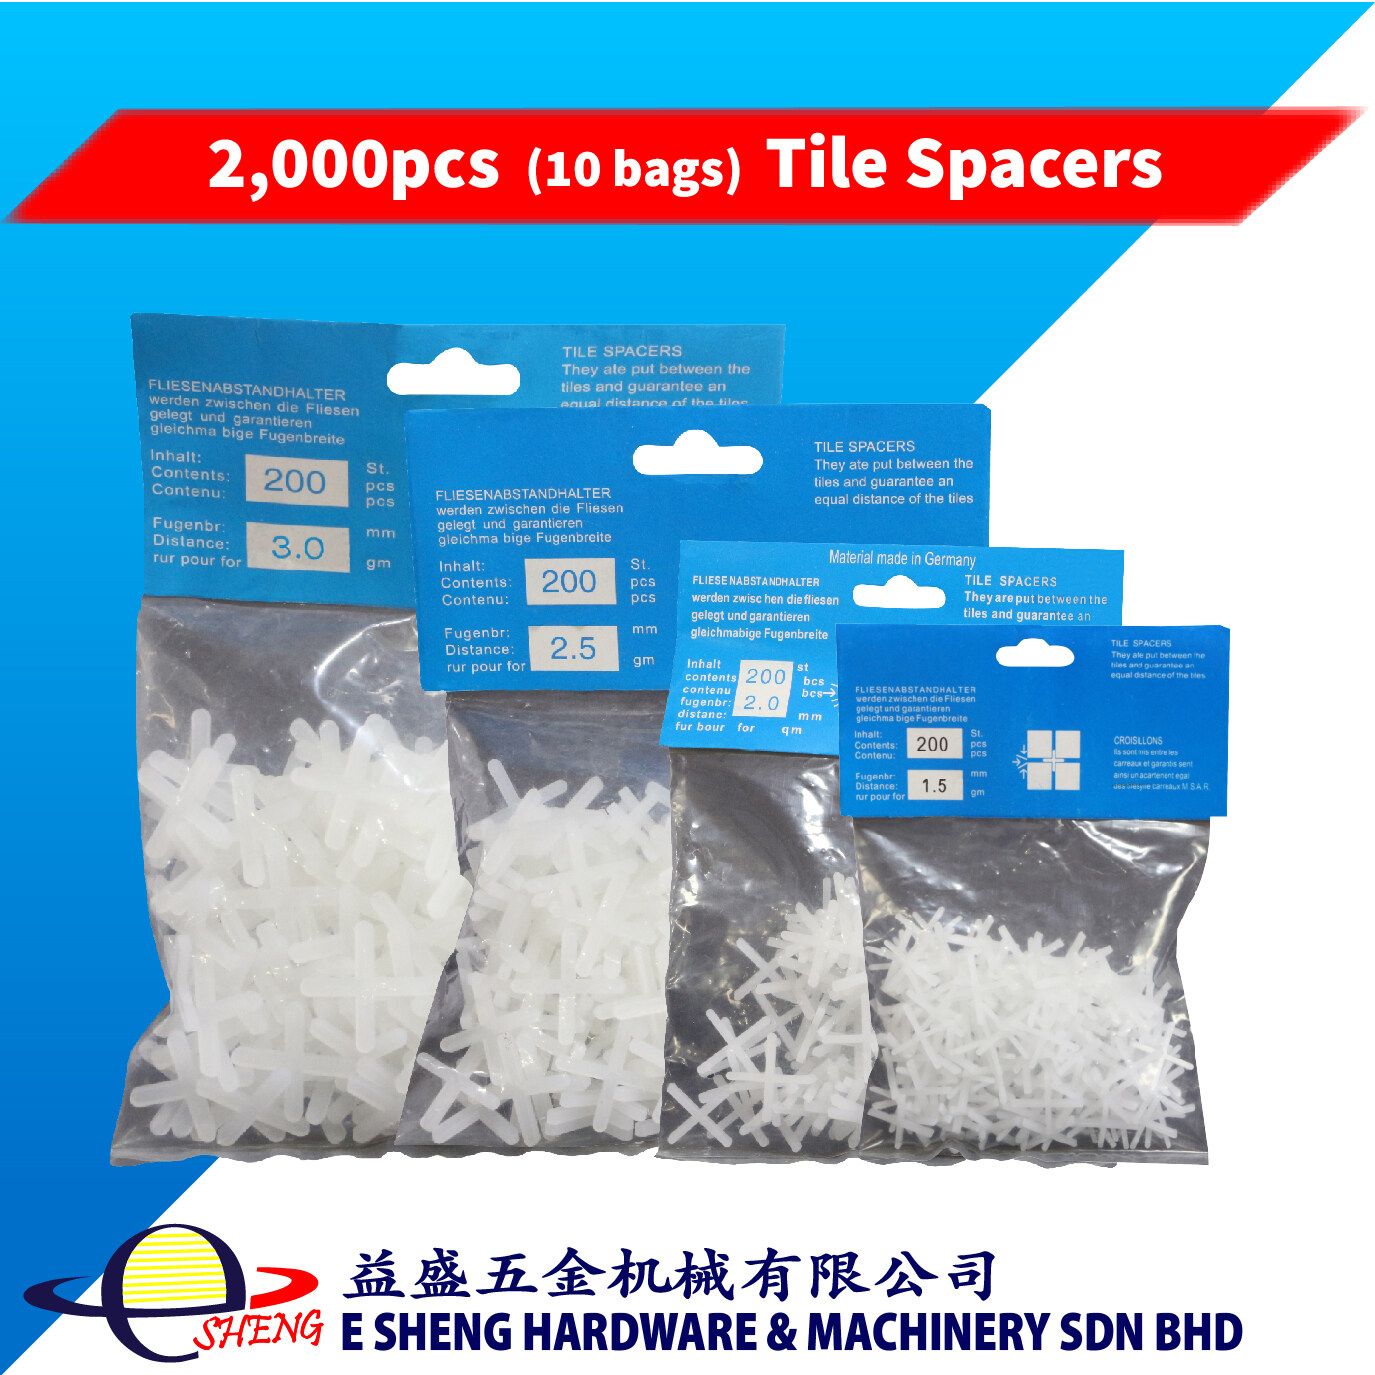 2,000pcs (10 bags) Mosaic Tile Spacers & Tile Cross (Can Mix with 1.5mm, 2.0mm, 2.5mm, 3.0mm)